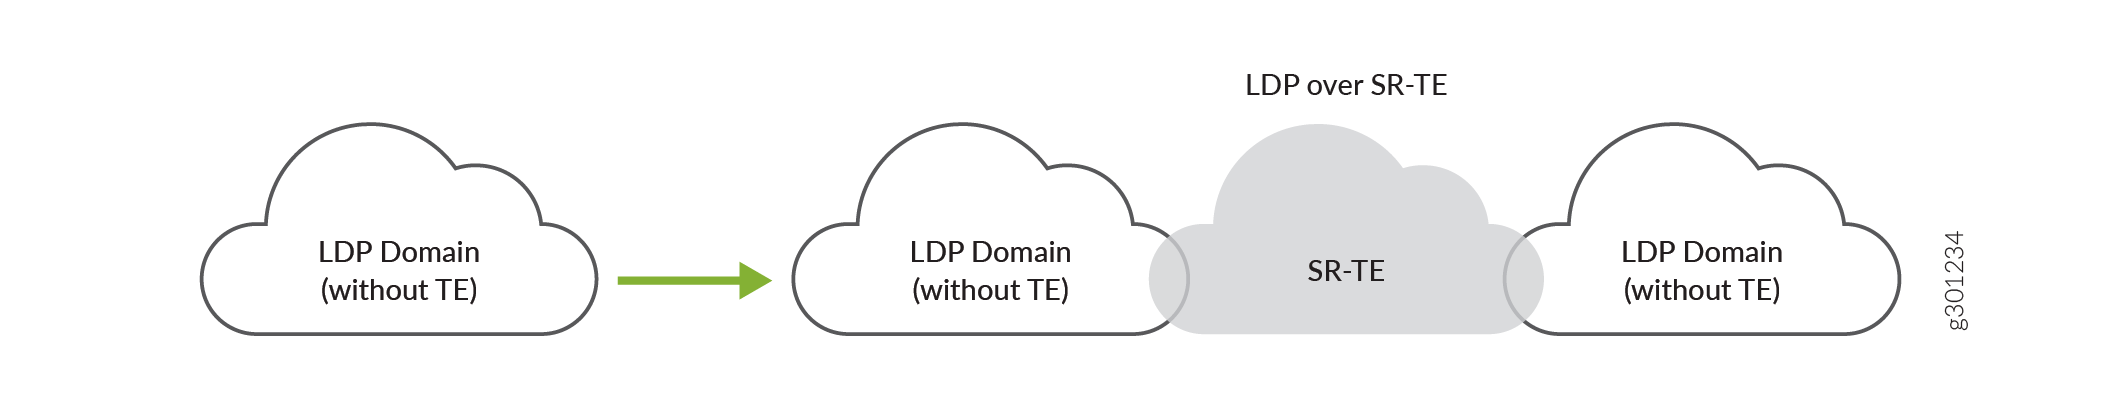 Interconnect LDP Domains over SR-TE in the Core Network